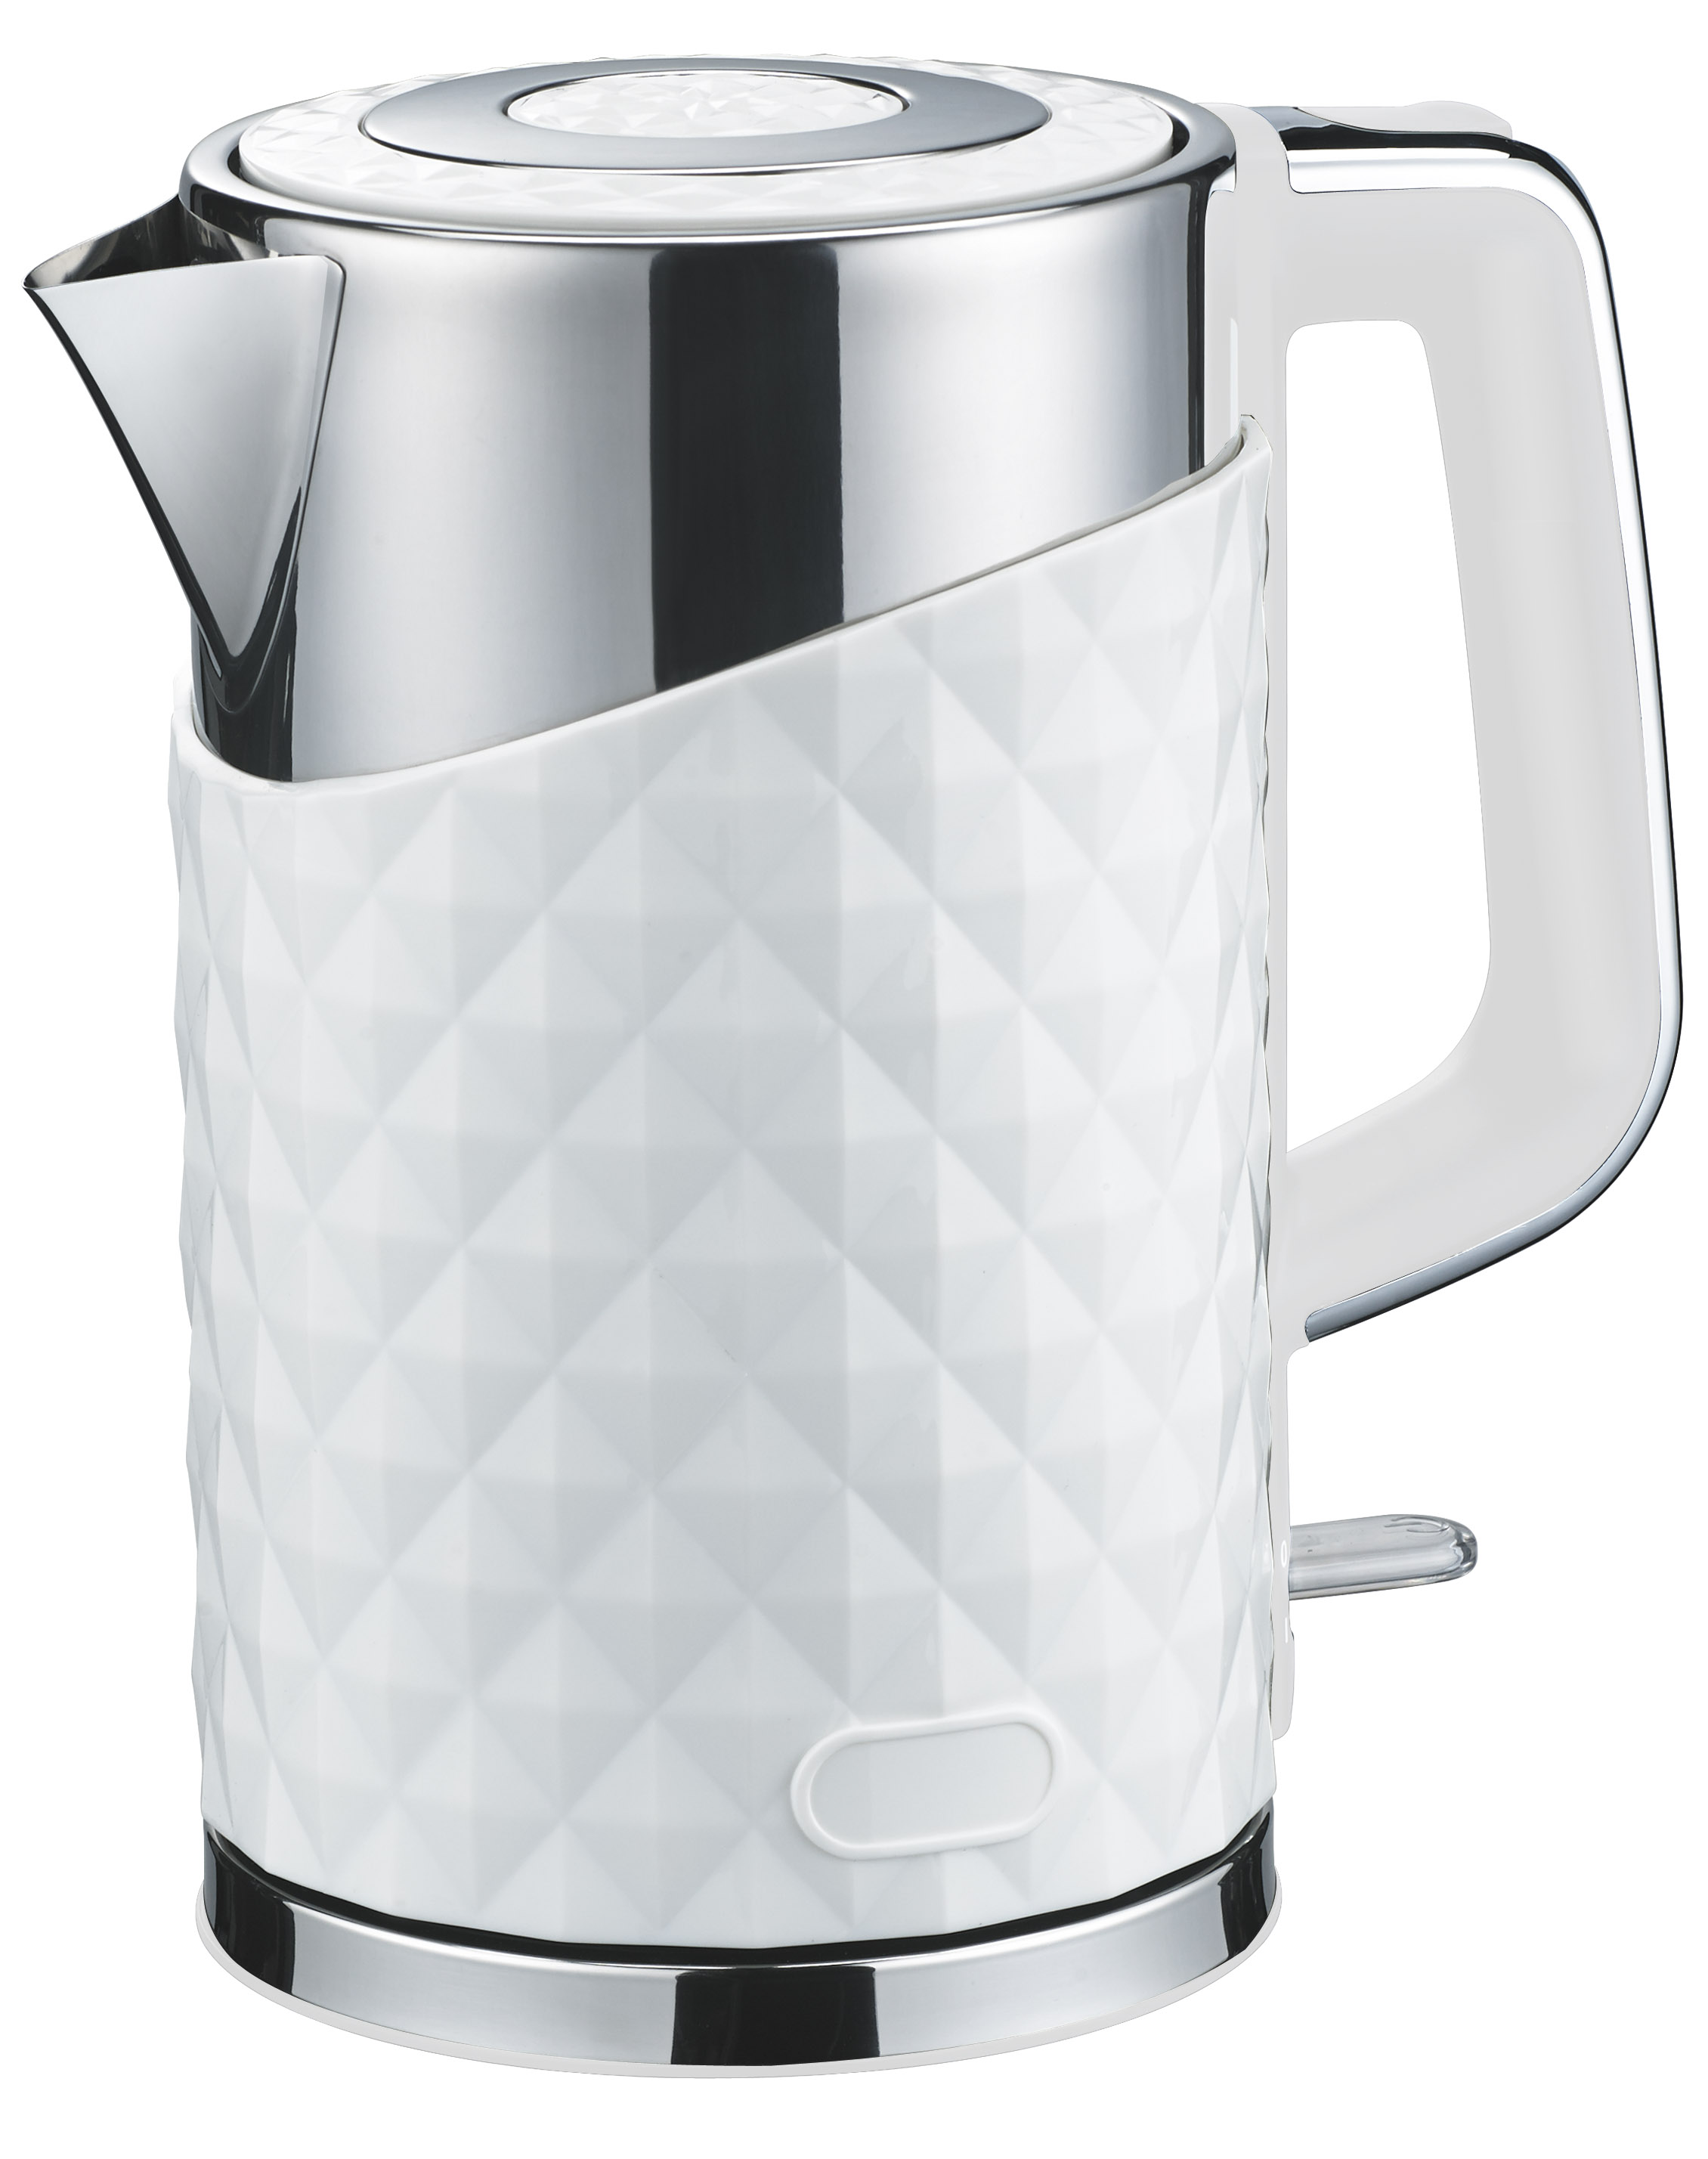 Stainless steel Electric tea kettle HB-3133B